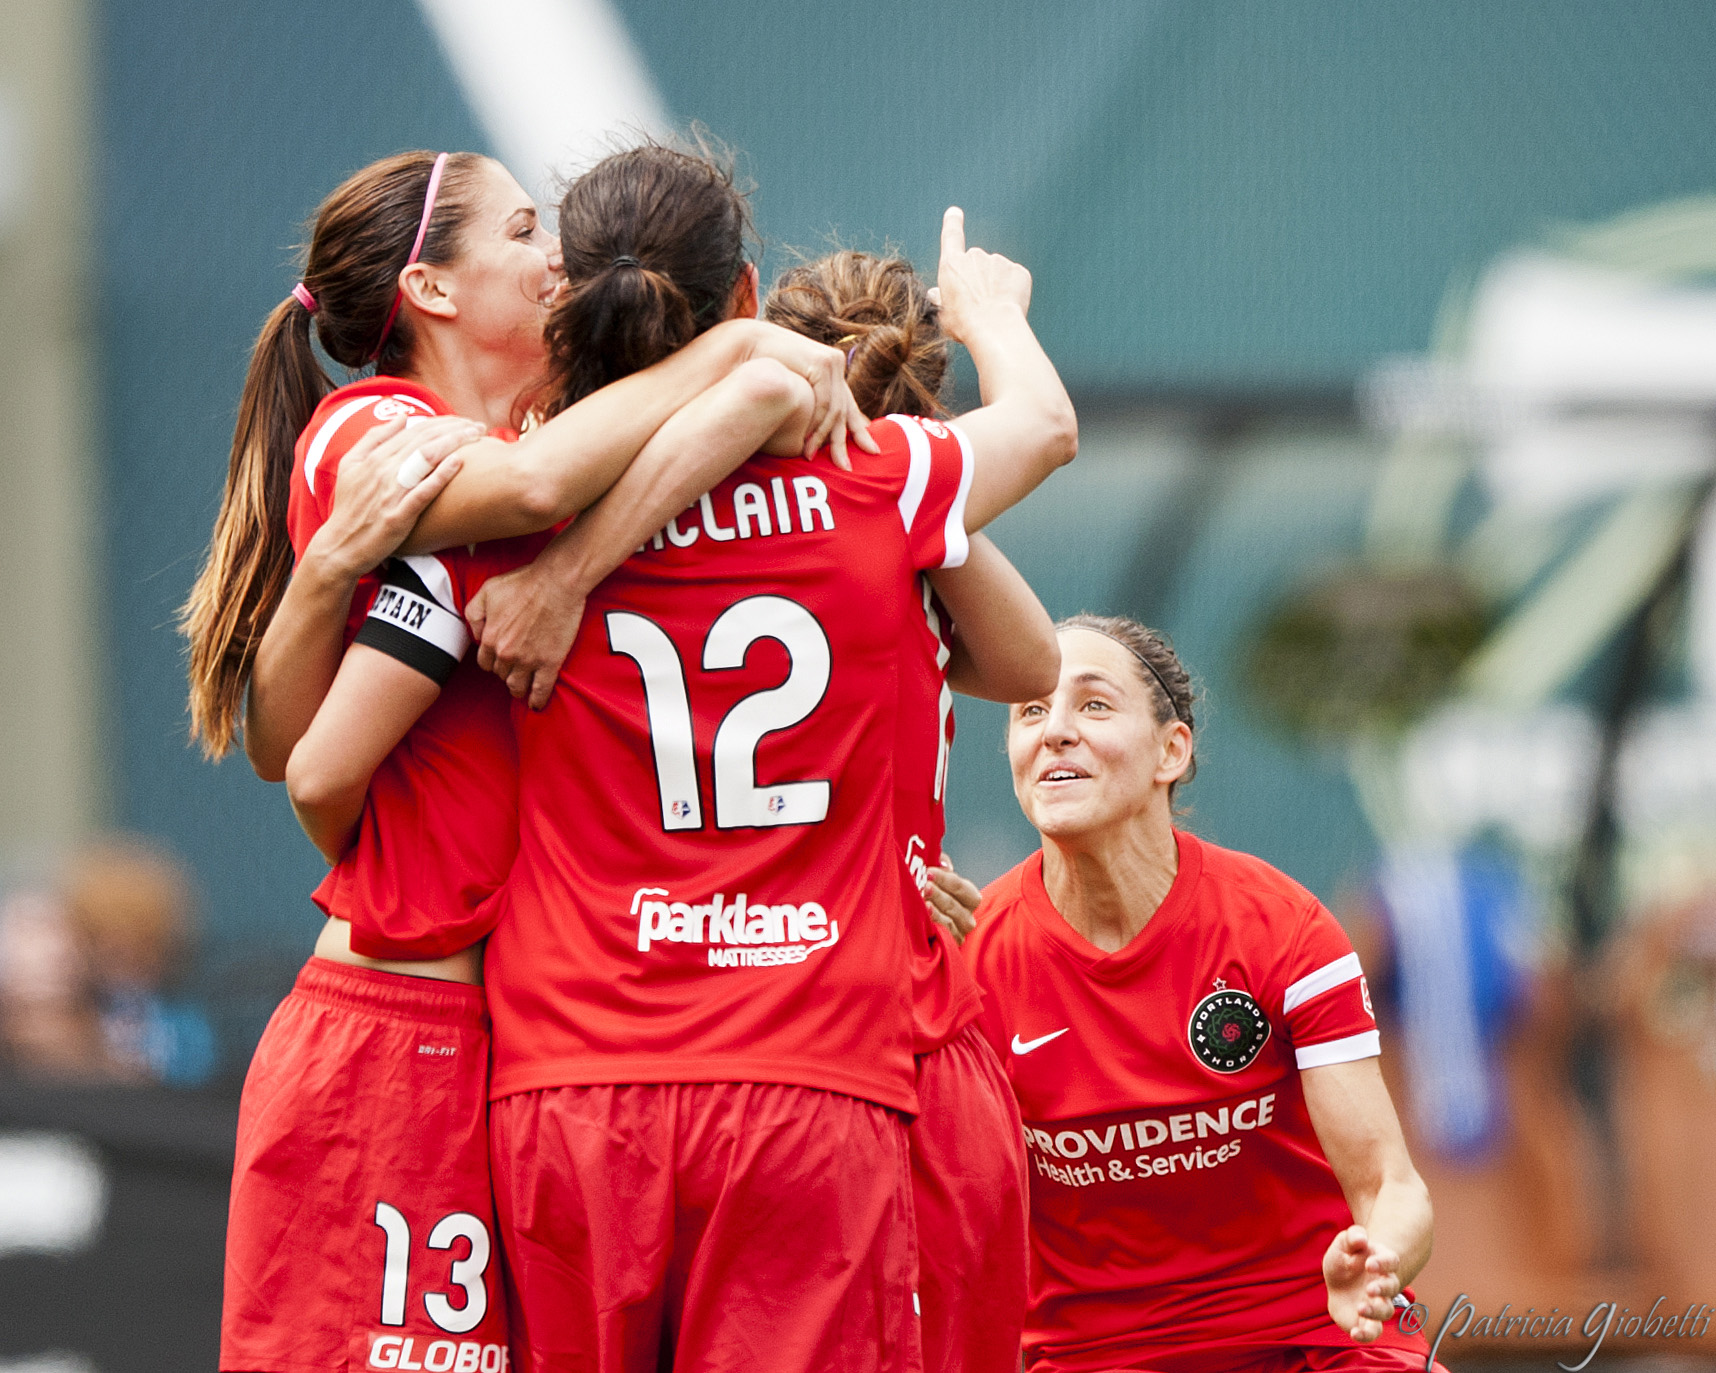 Alex Morgan, Christine Sinclair and Veronica Boquete are on the same page, and the Thorns are on fire. (Photo Copyright Patricia Giobetti for The Equalizer)